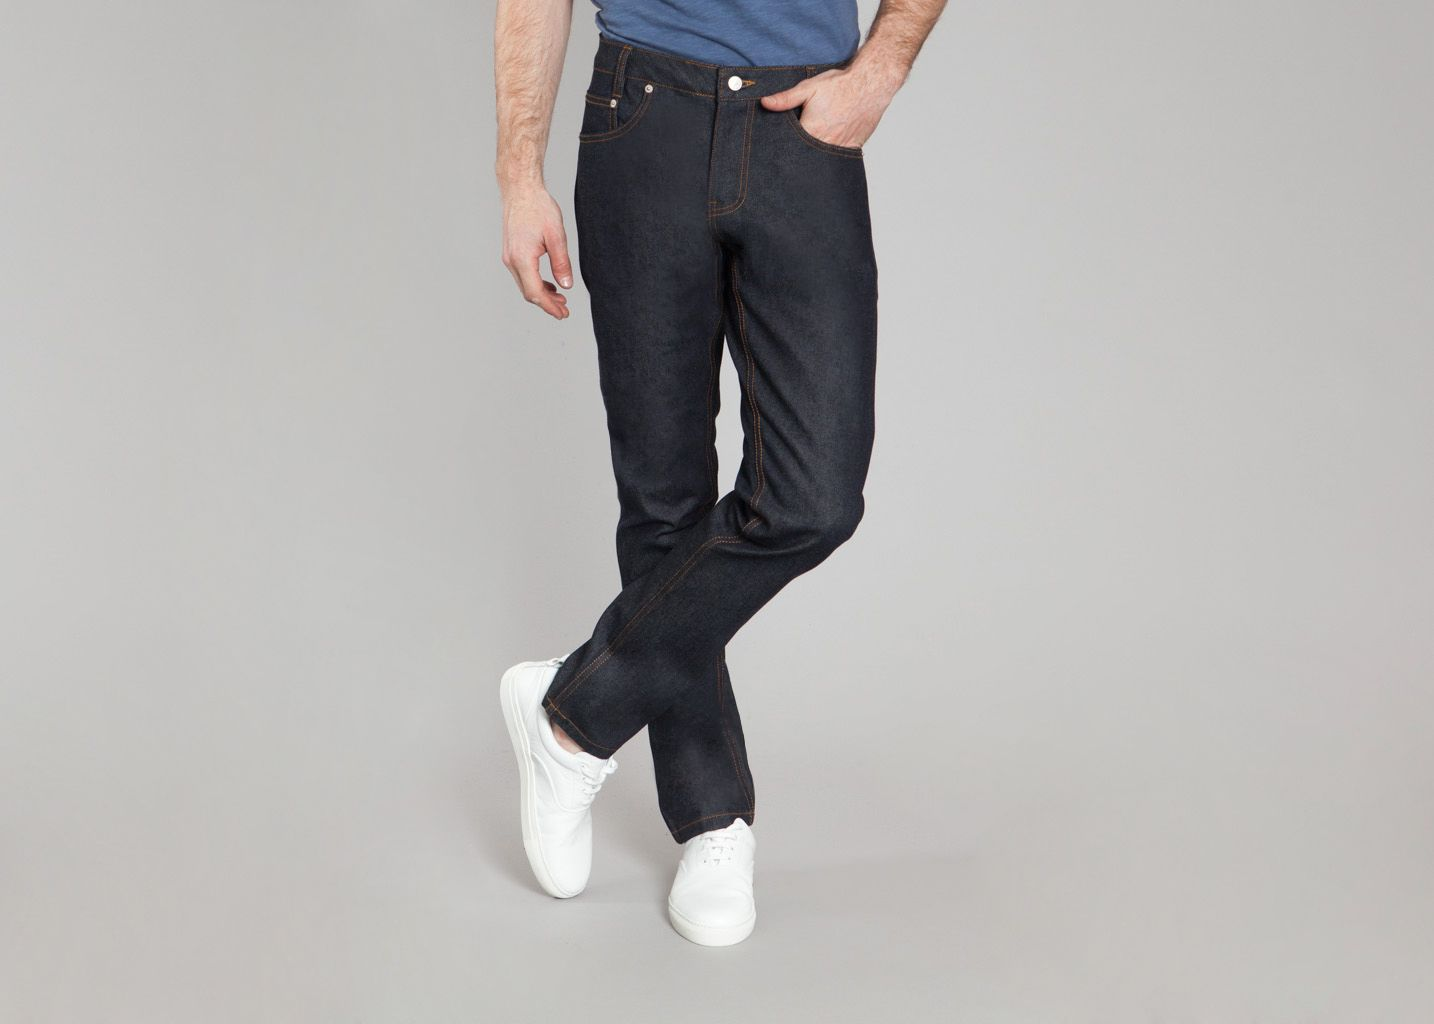 Denim Selvedge Jeans - La Panoplie